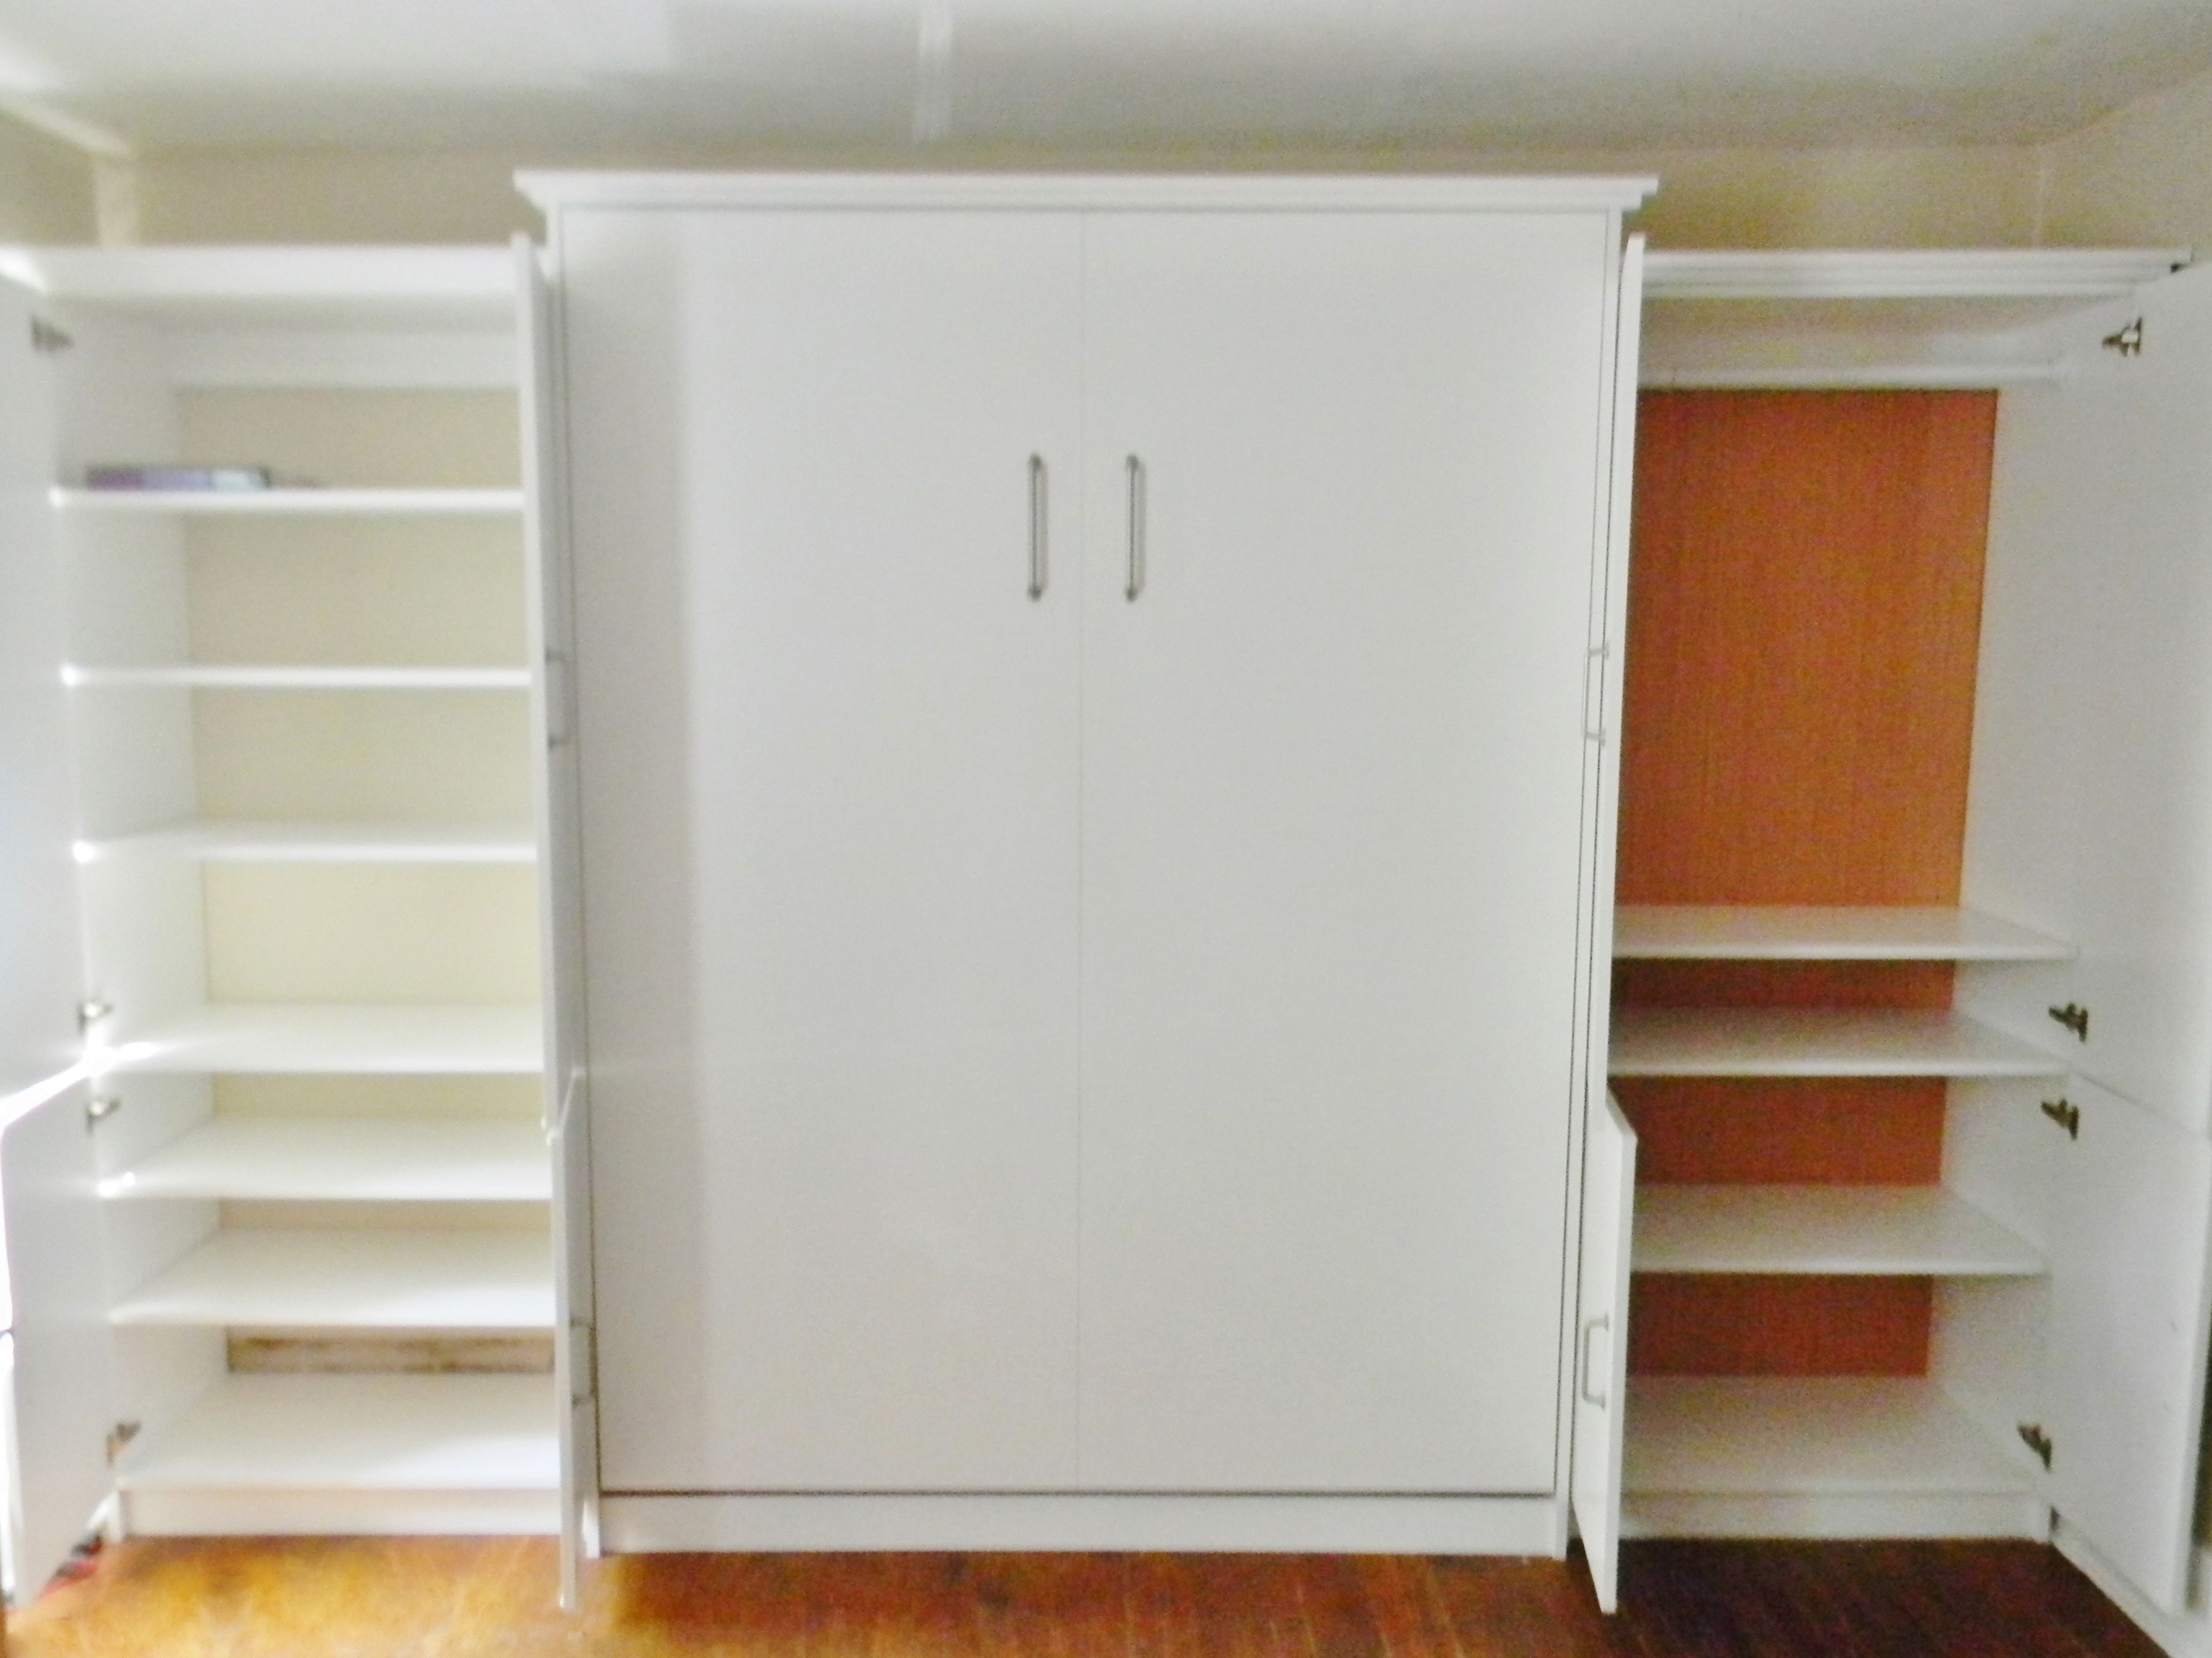 Murphy Bed With A Custom Wardrobe/closet, Manhattan Collection By Murphy  Wallbed USA.